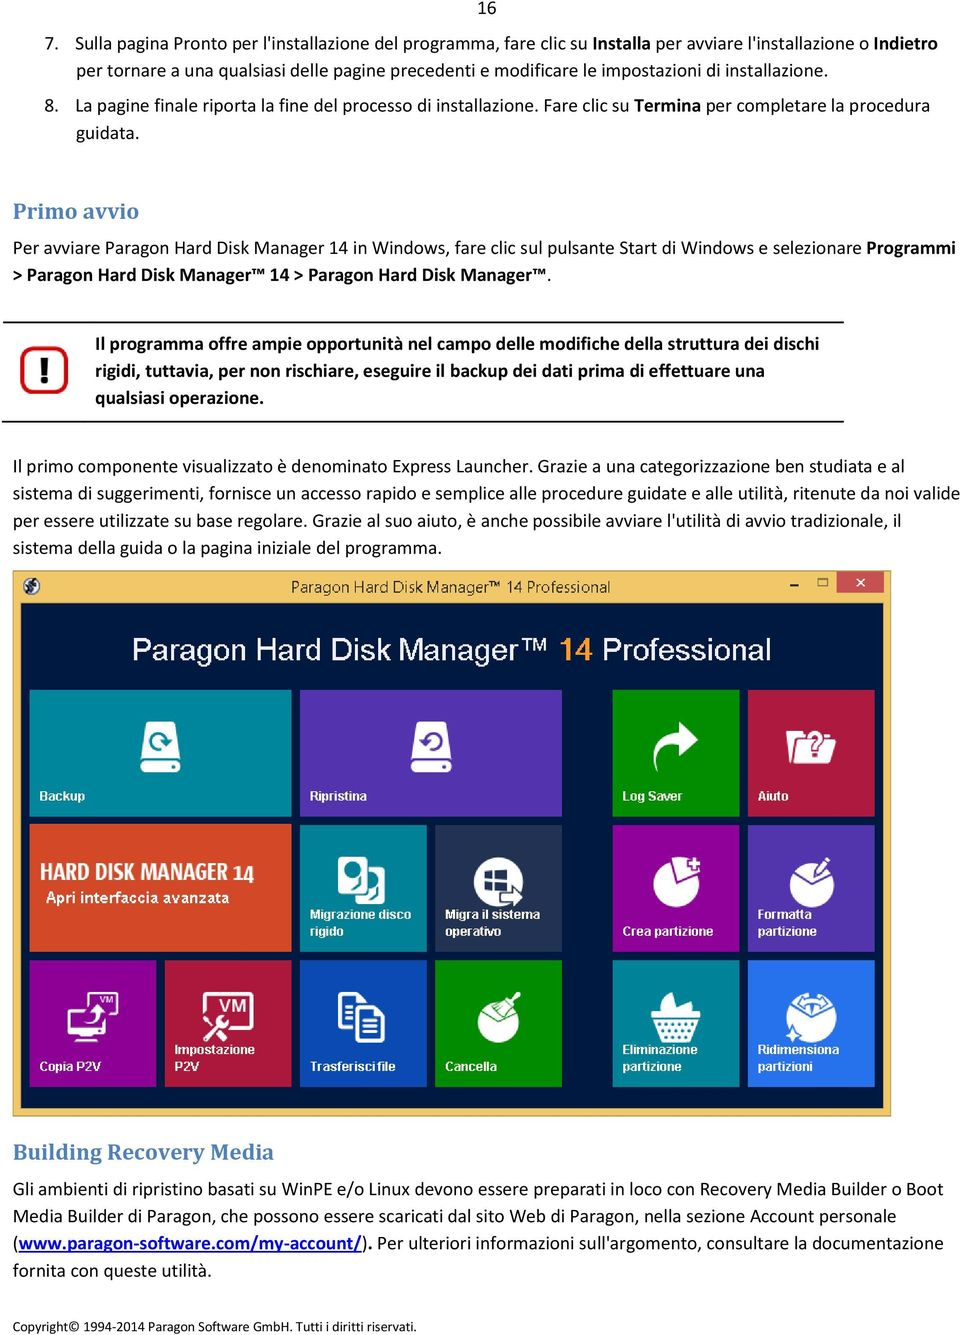 Primo avvio Per avviare Paragon Hard Disk Manager 14 in Windows, fare clic sul pulsante Start di Windows e selezionare Programmi > Paragon Hard Disk Manager 14 > Paragon Hard Disk Manager.